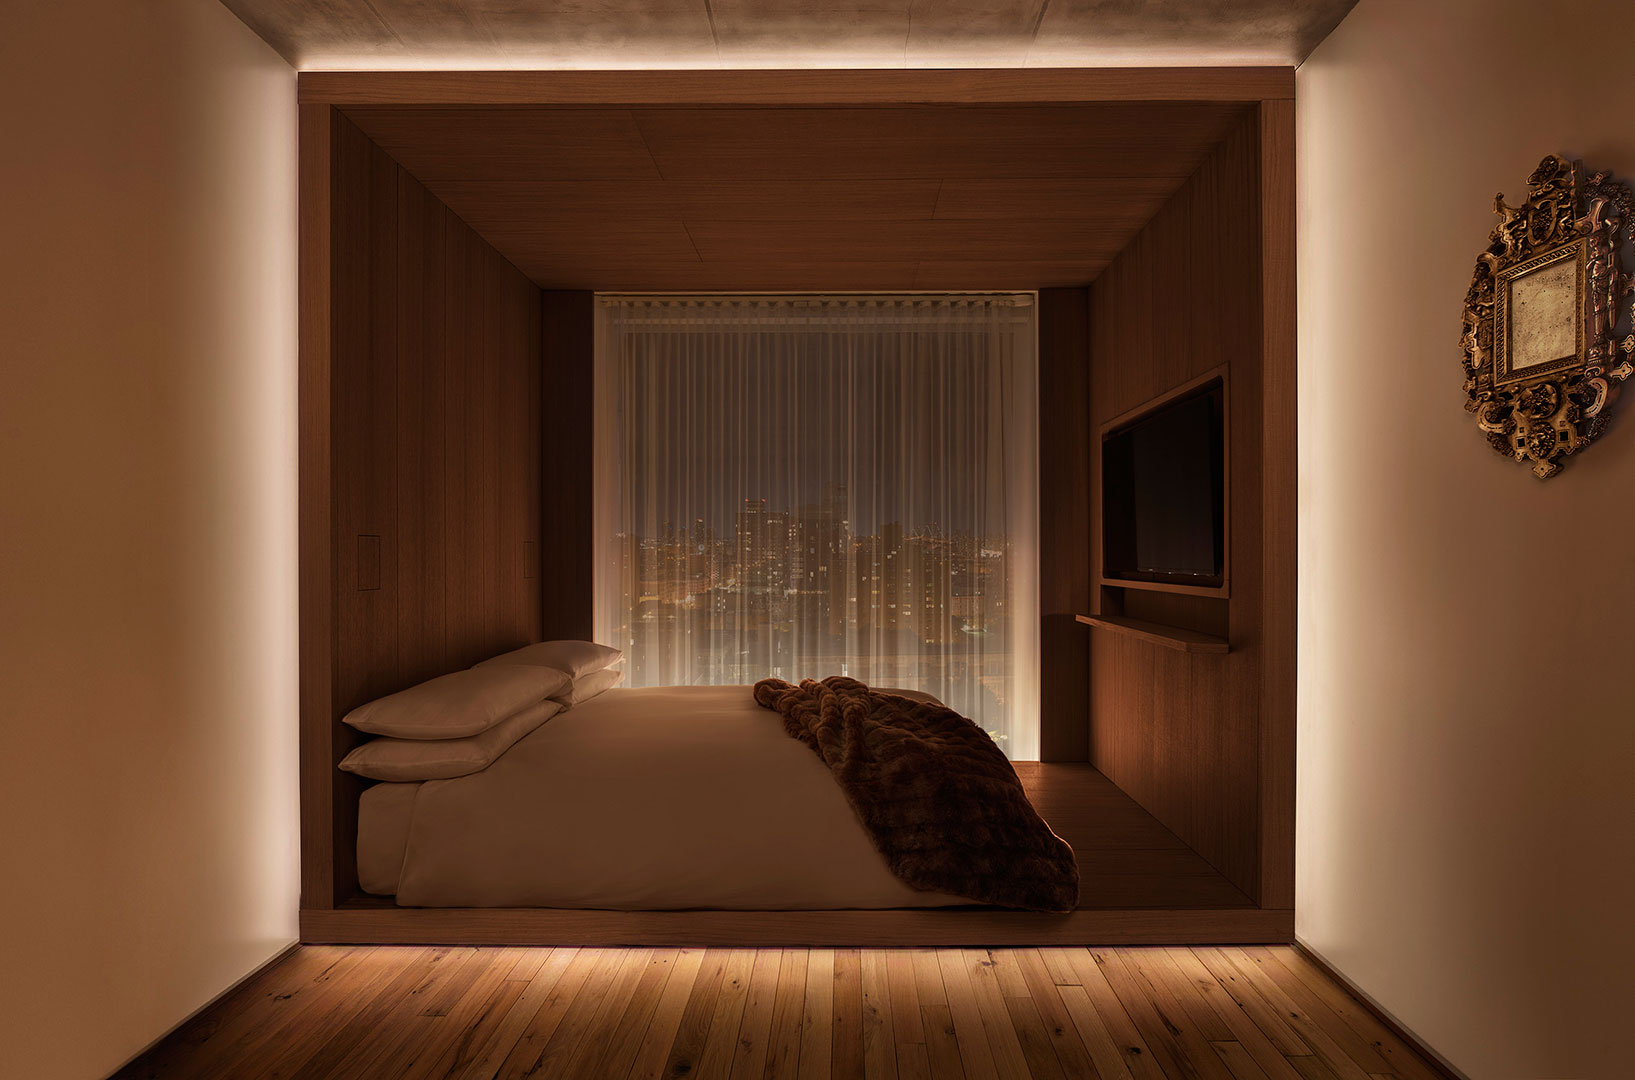 Hotel Design Ny Public Hotel New York City An Ian Schrager Hotel